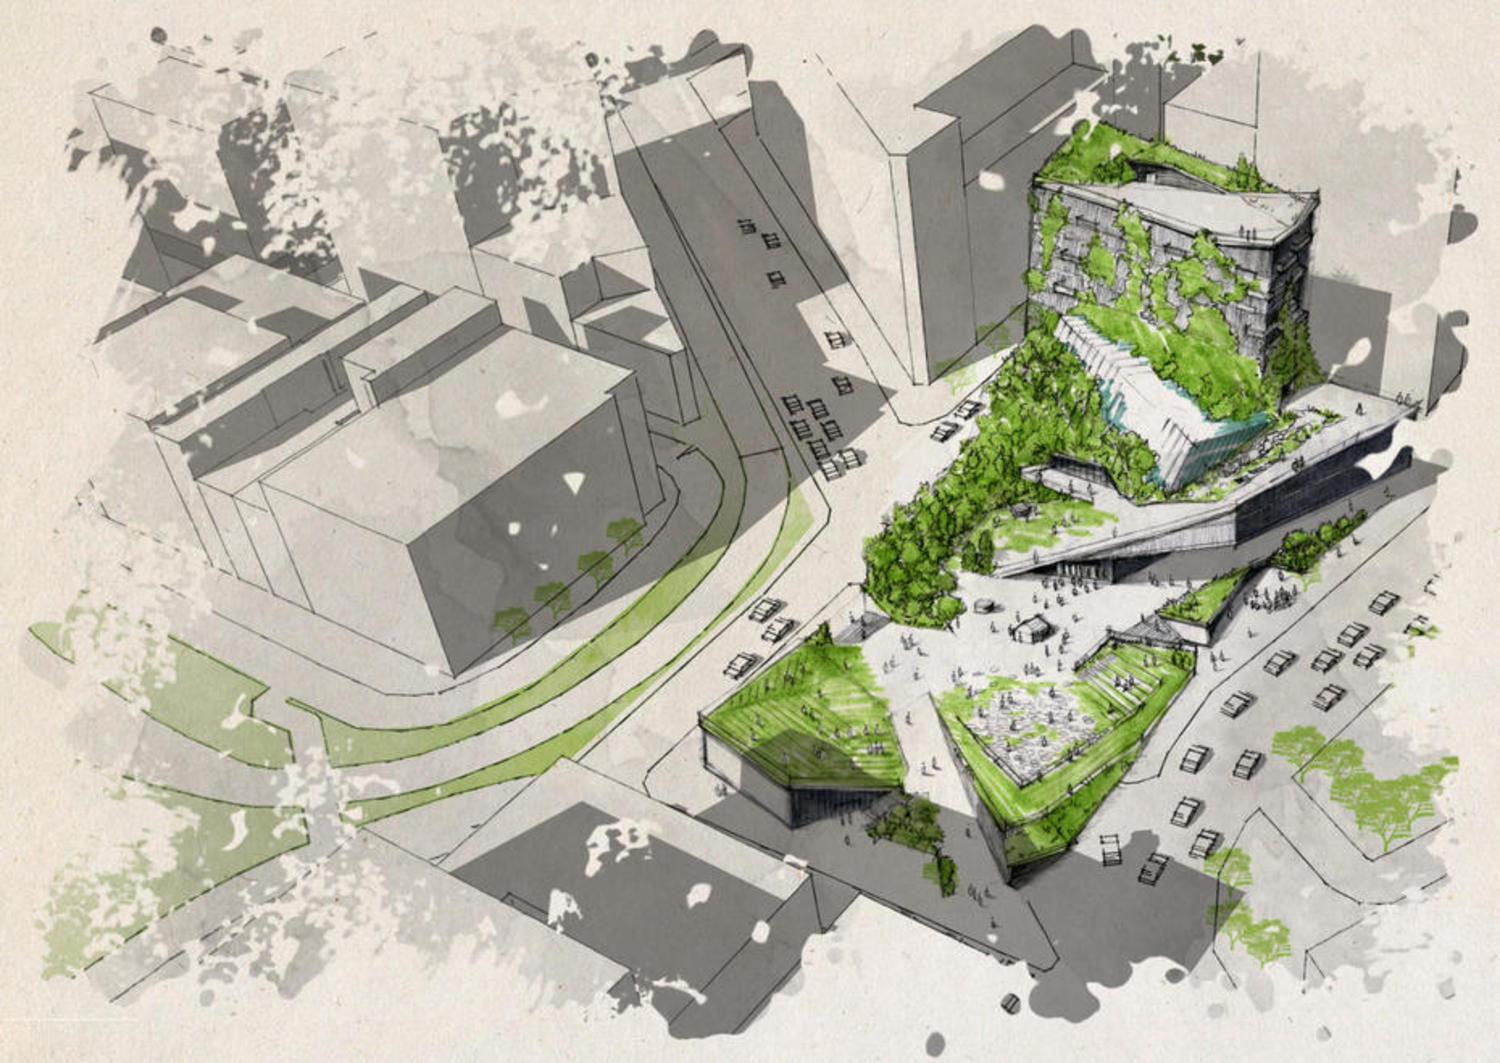 Illustration from RISD student Erin Graham's proposal for the future Climate Museum